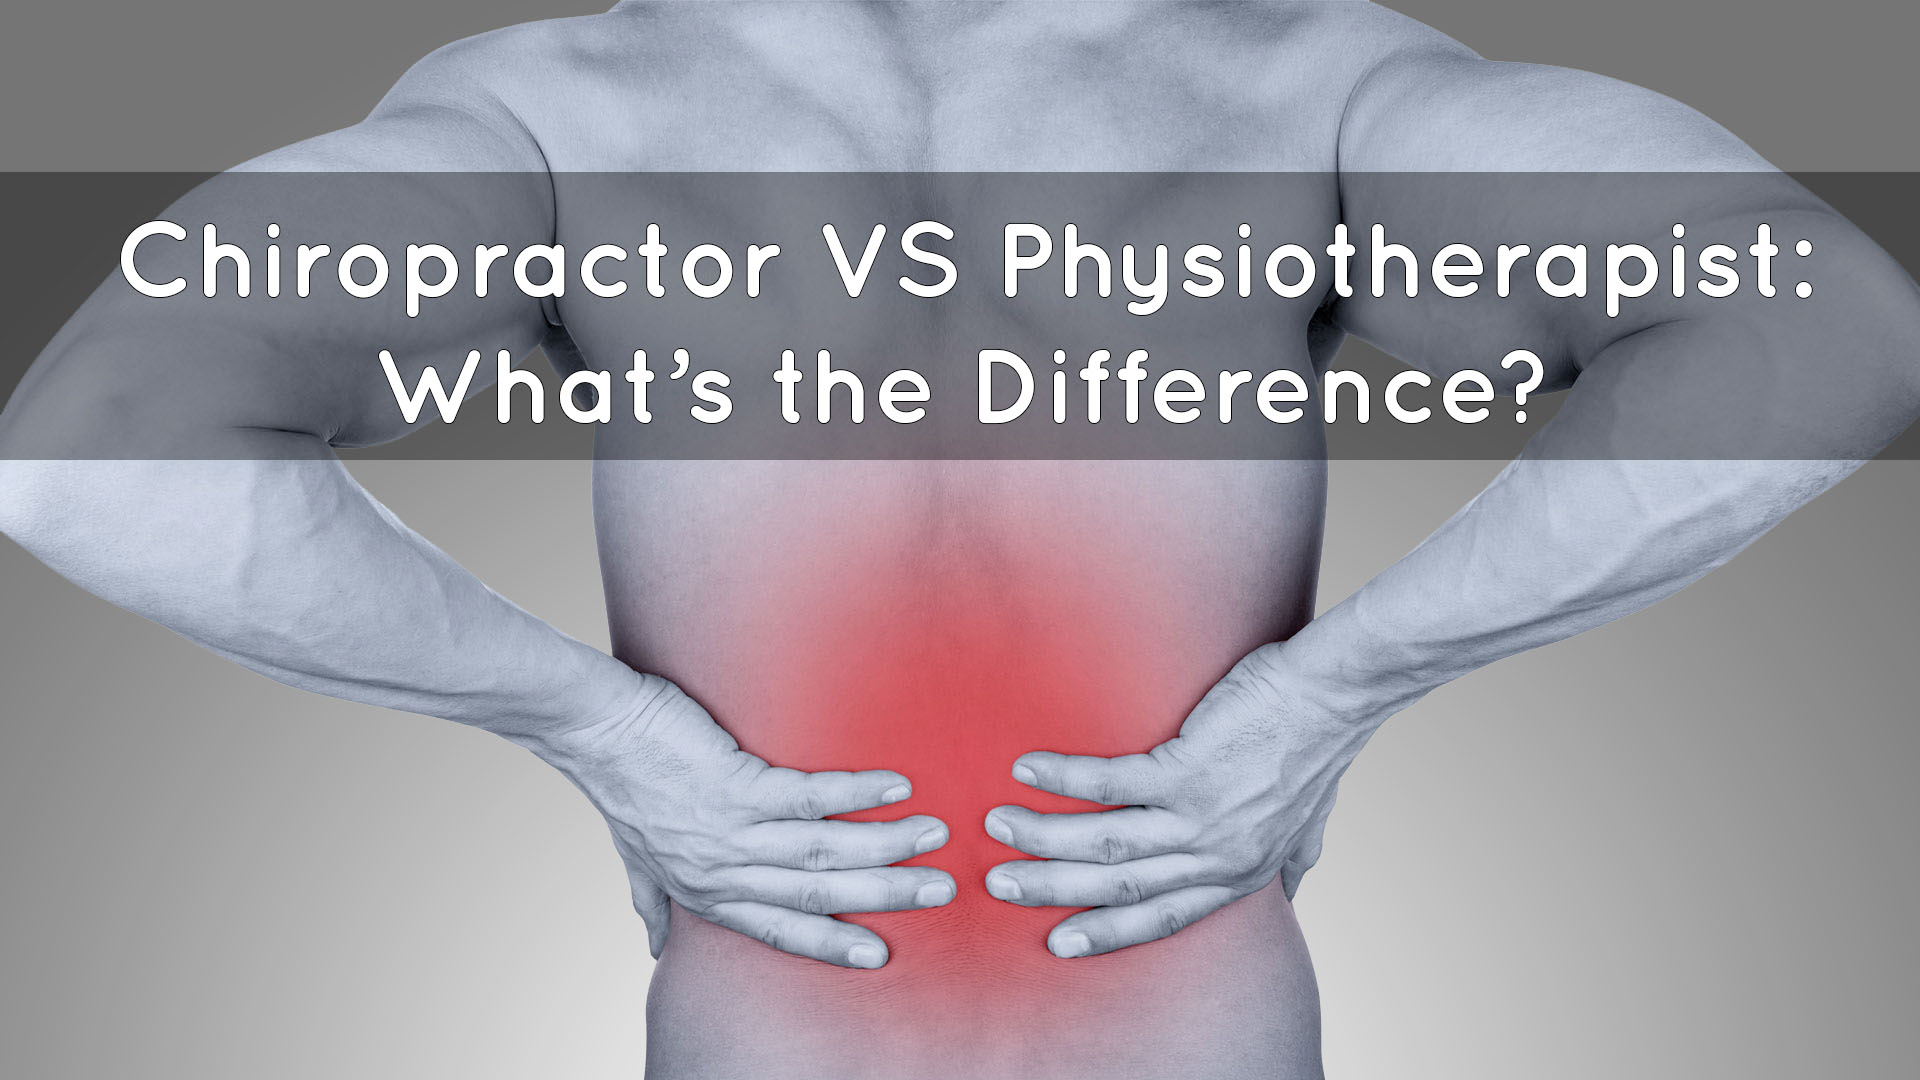 Chiropractor VS Physiotherapist Banner